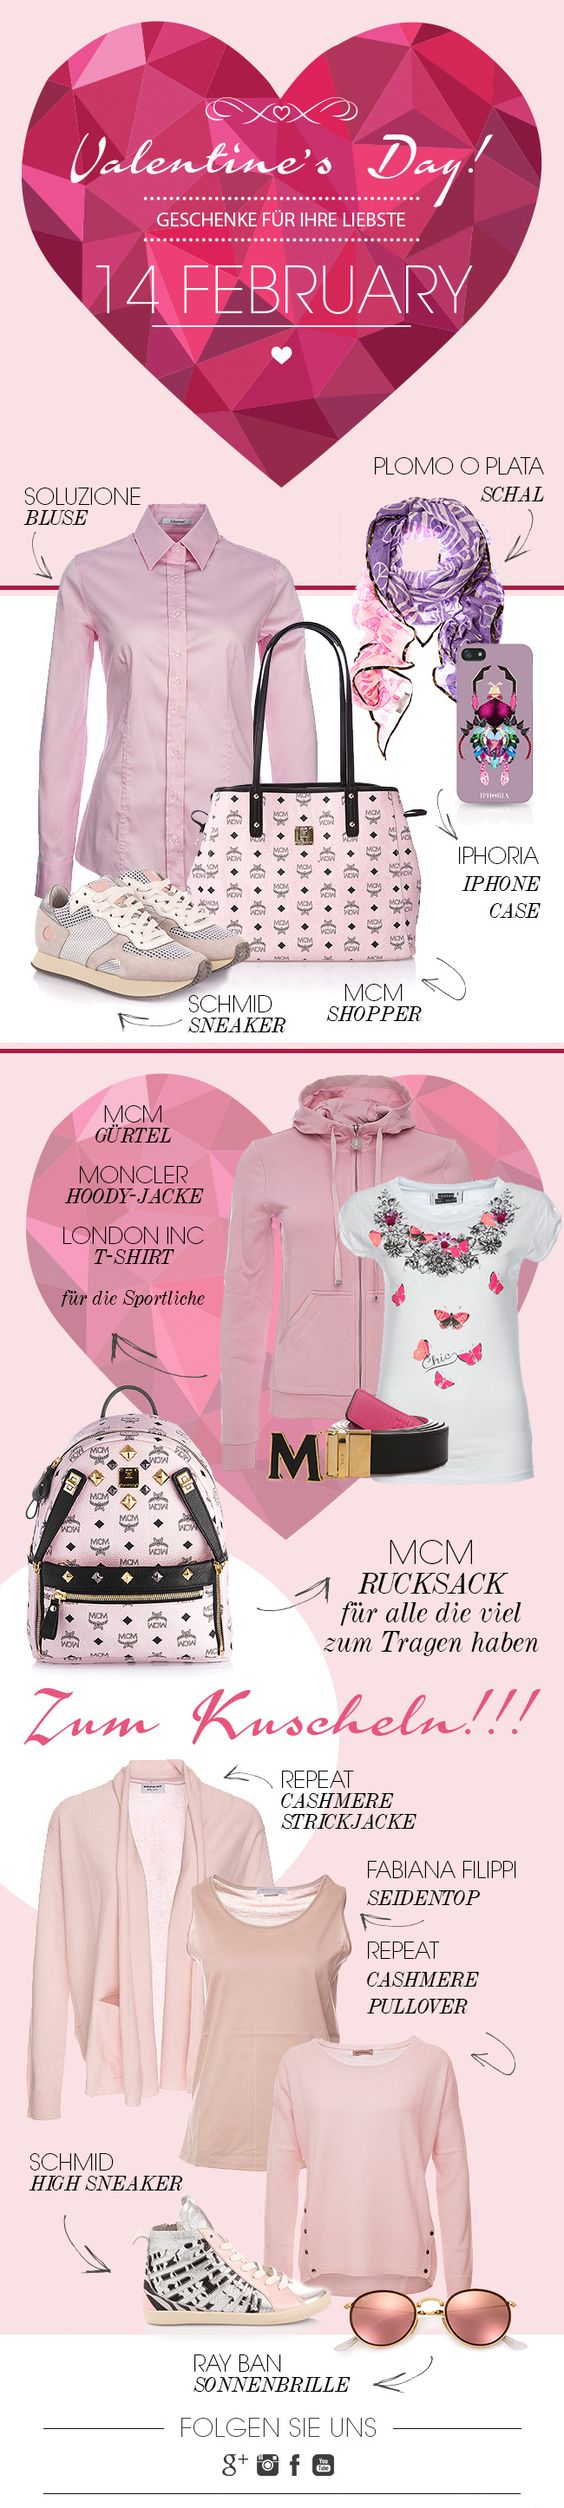 #musthave #fashion #newin #modeblog #fashionstore #onlineshop #shop #online  #sailerstyle #onlineshop #fashion #blog #trusted #stylenews #newsletter #design  #labels #sale #valentinsday #love #pink #heart